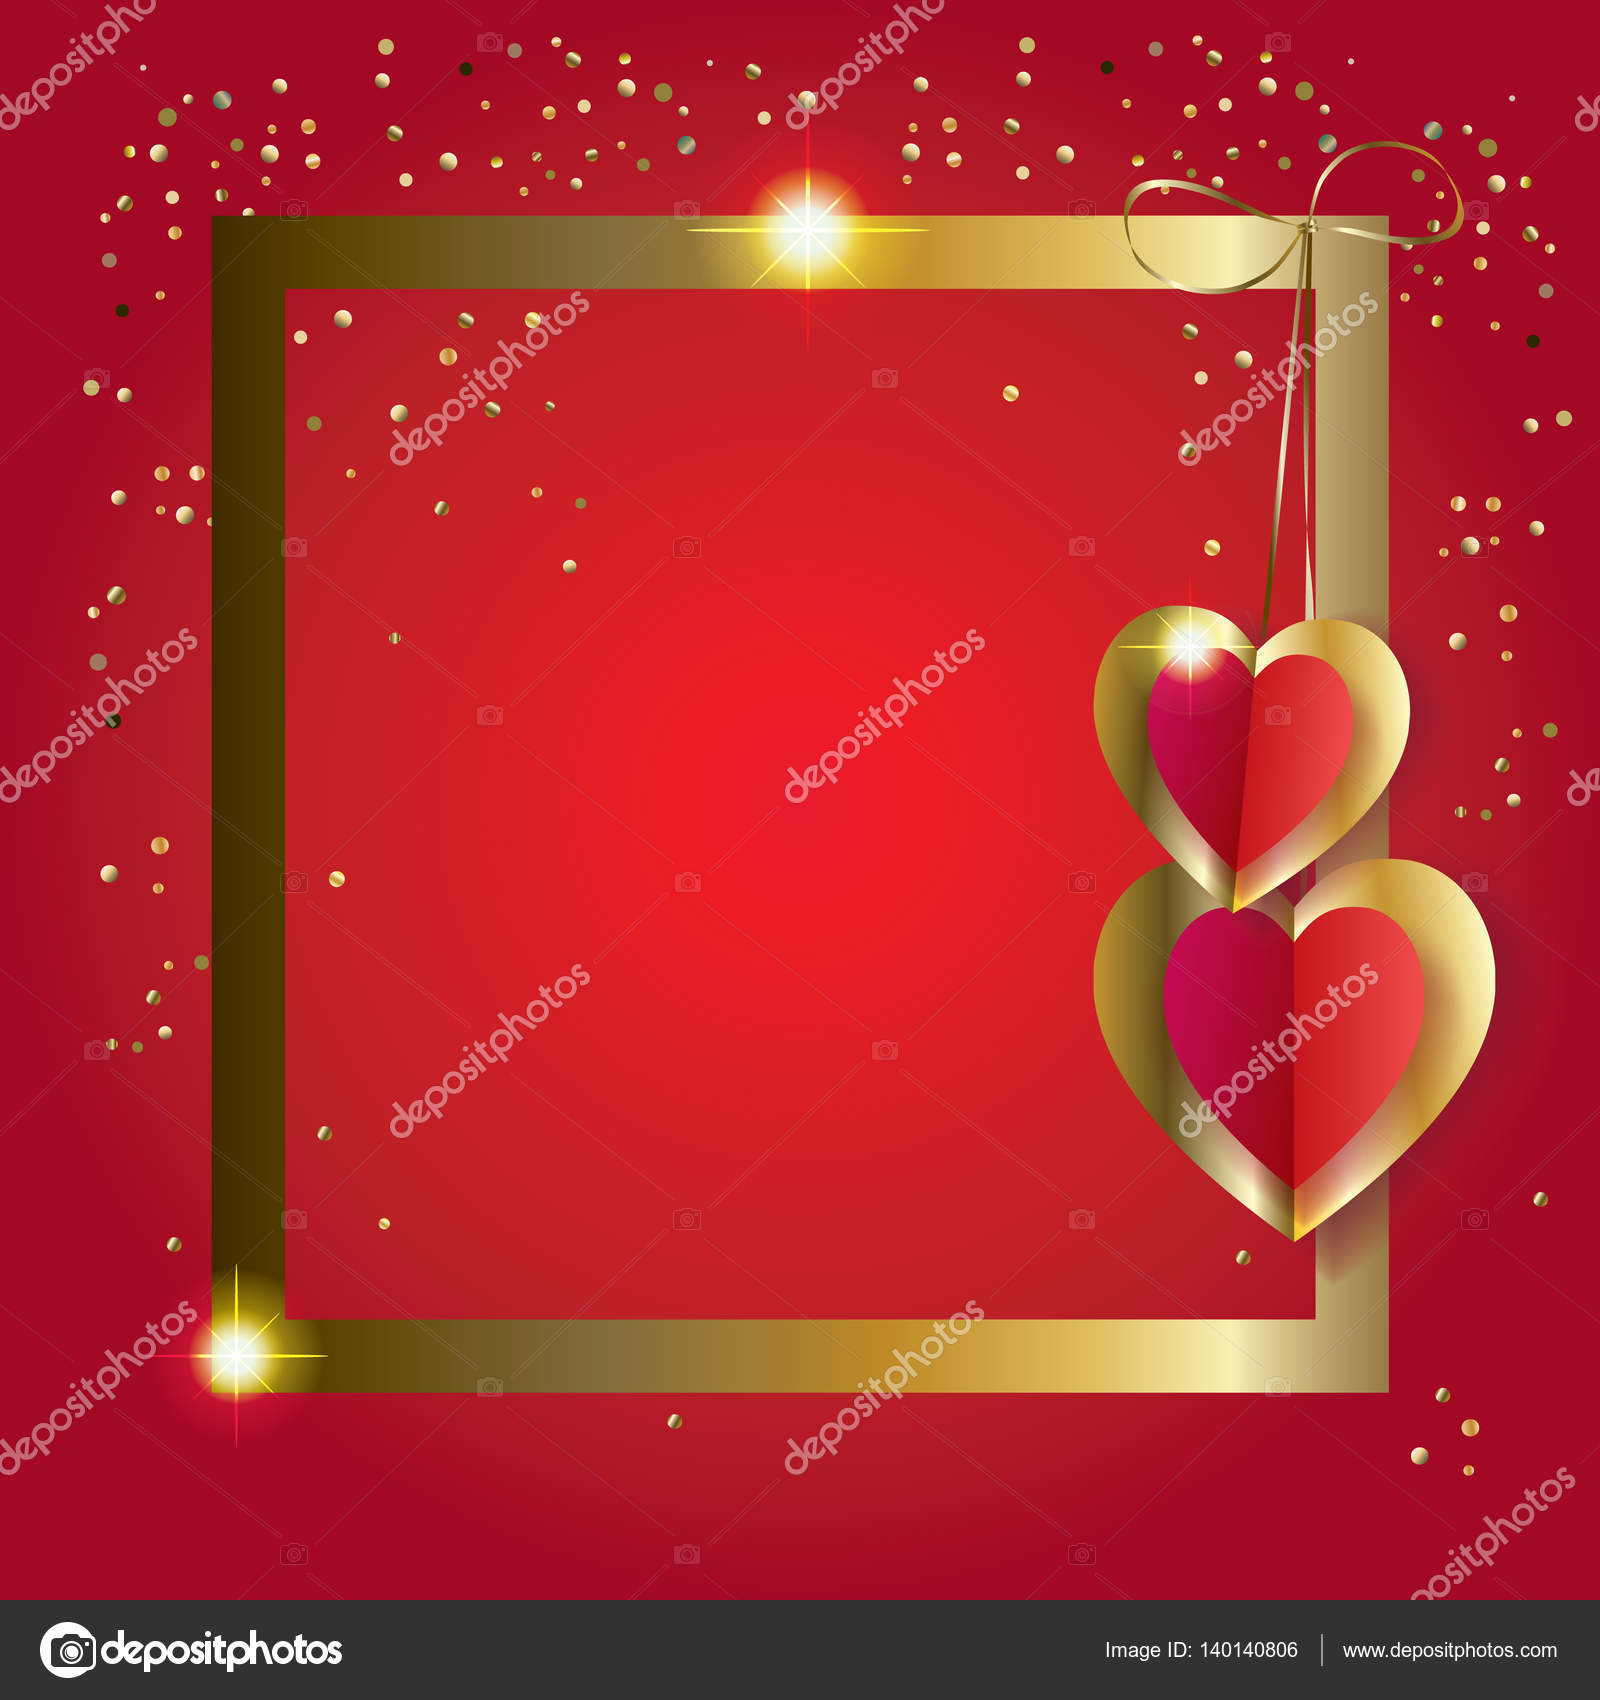 frame valentines day greeting card border layout vector illustration romantic poster with hearts